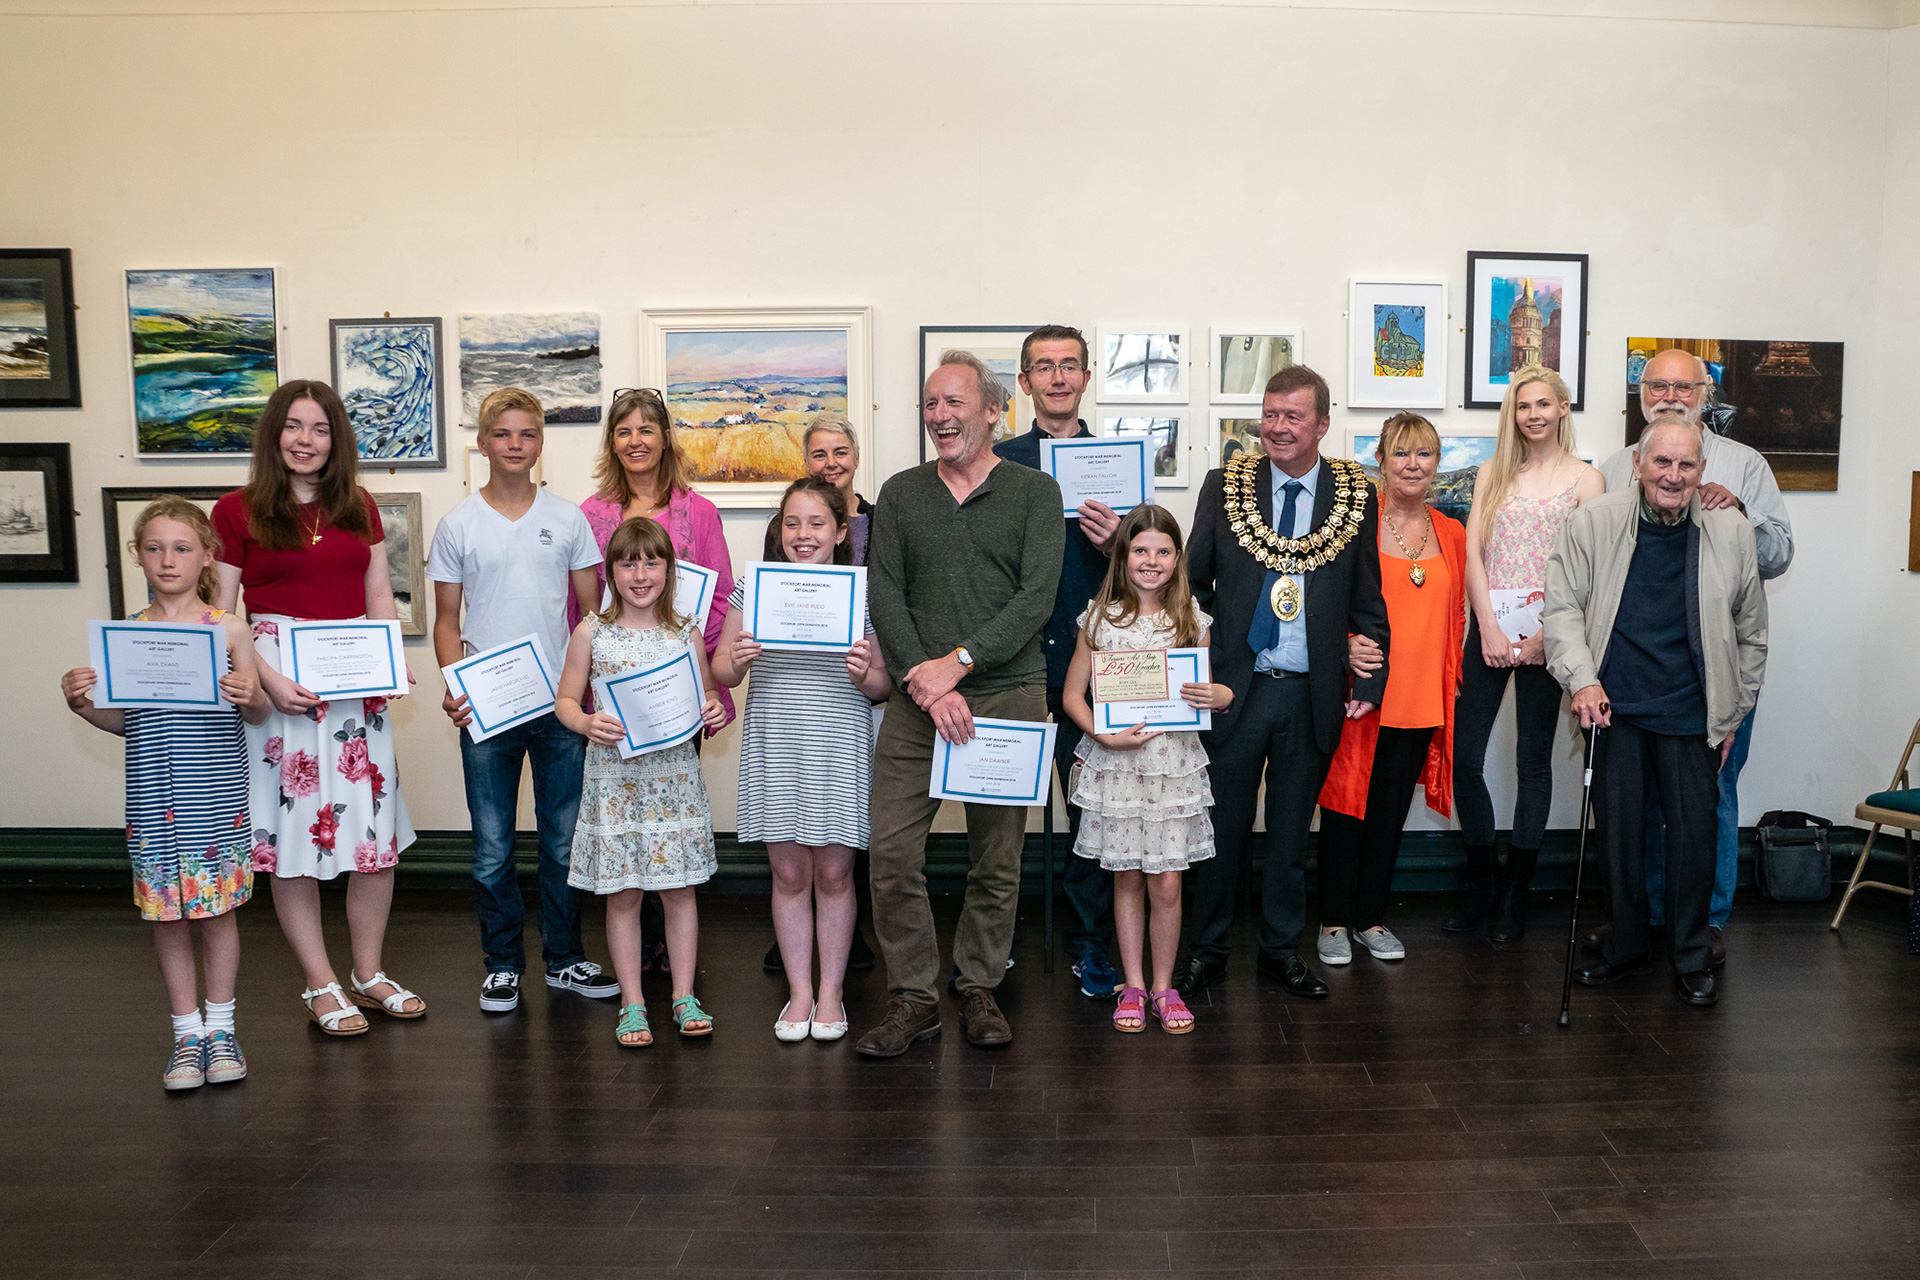 Stockport Open Art Exhibition Winners 2018